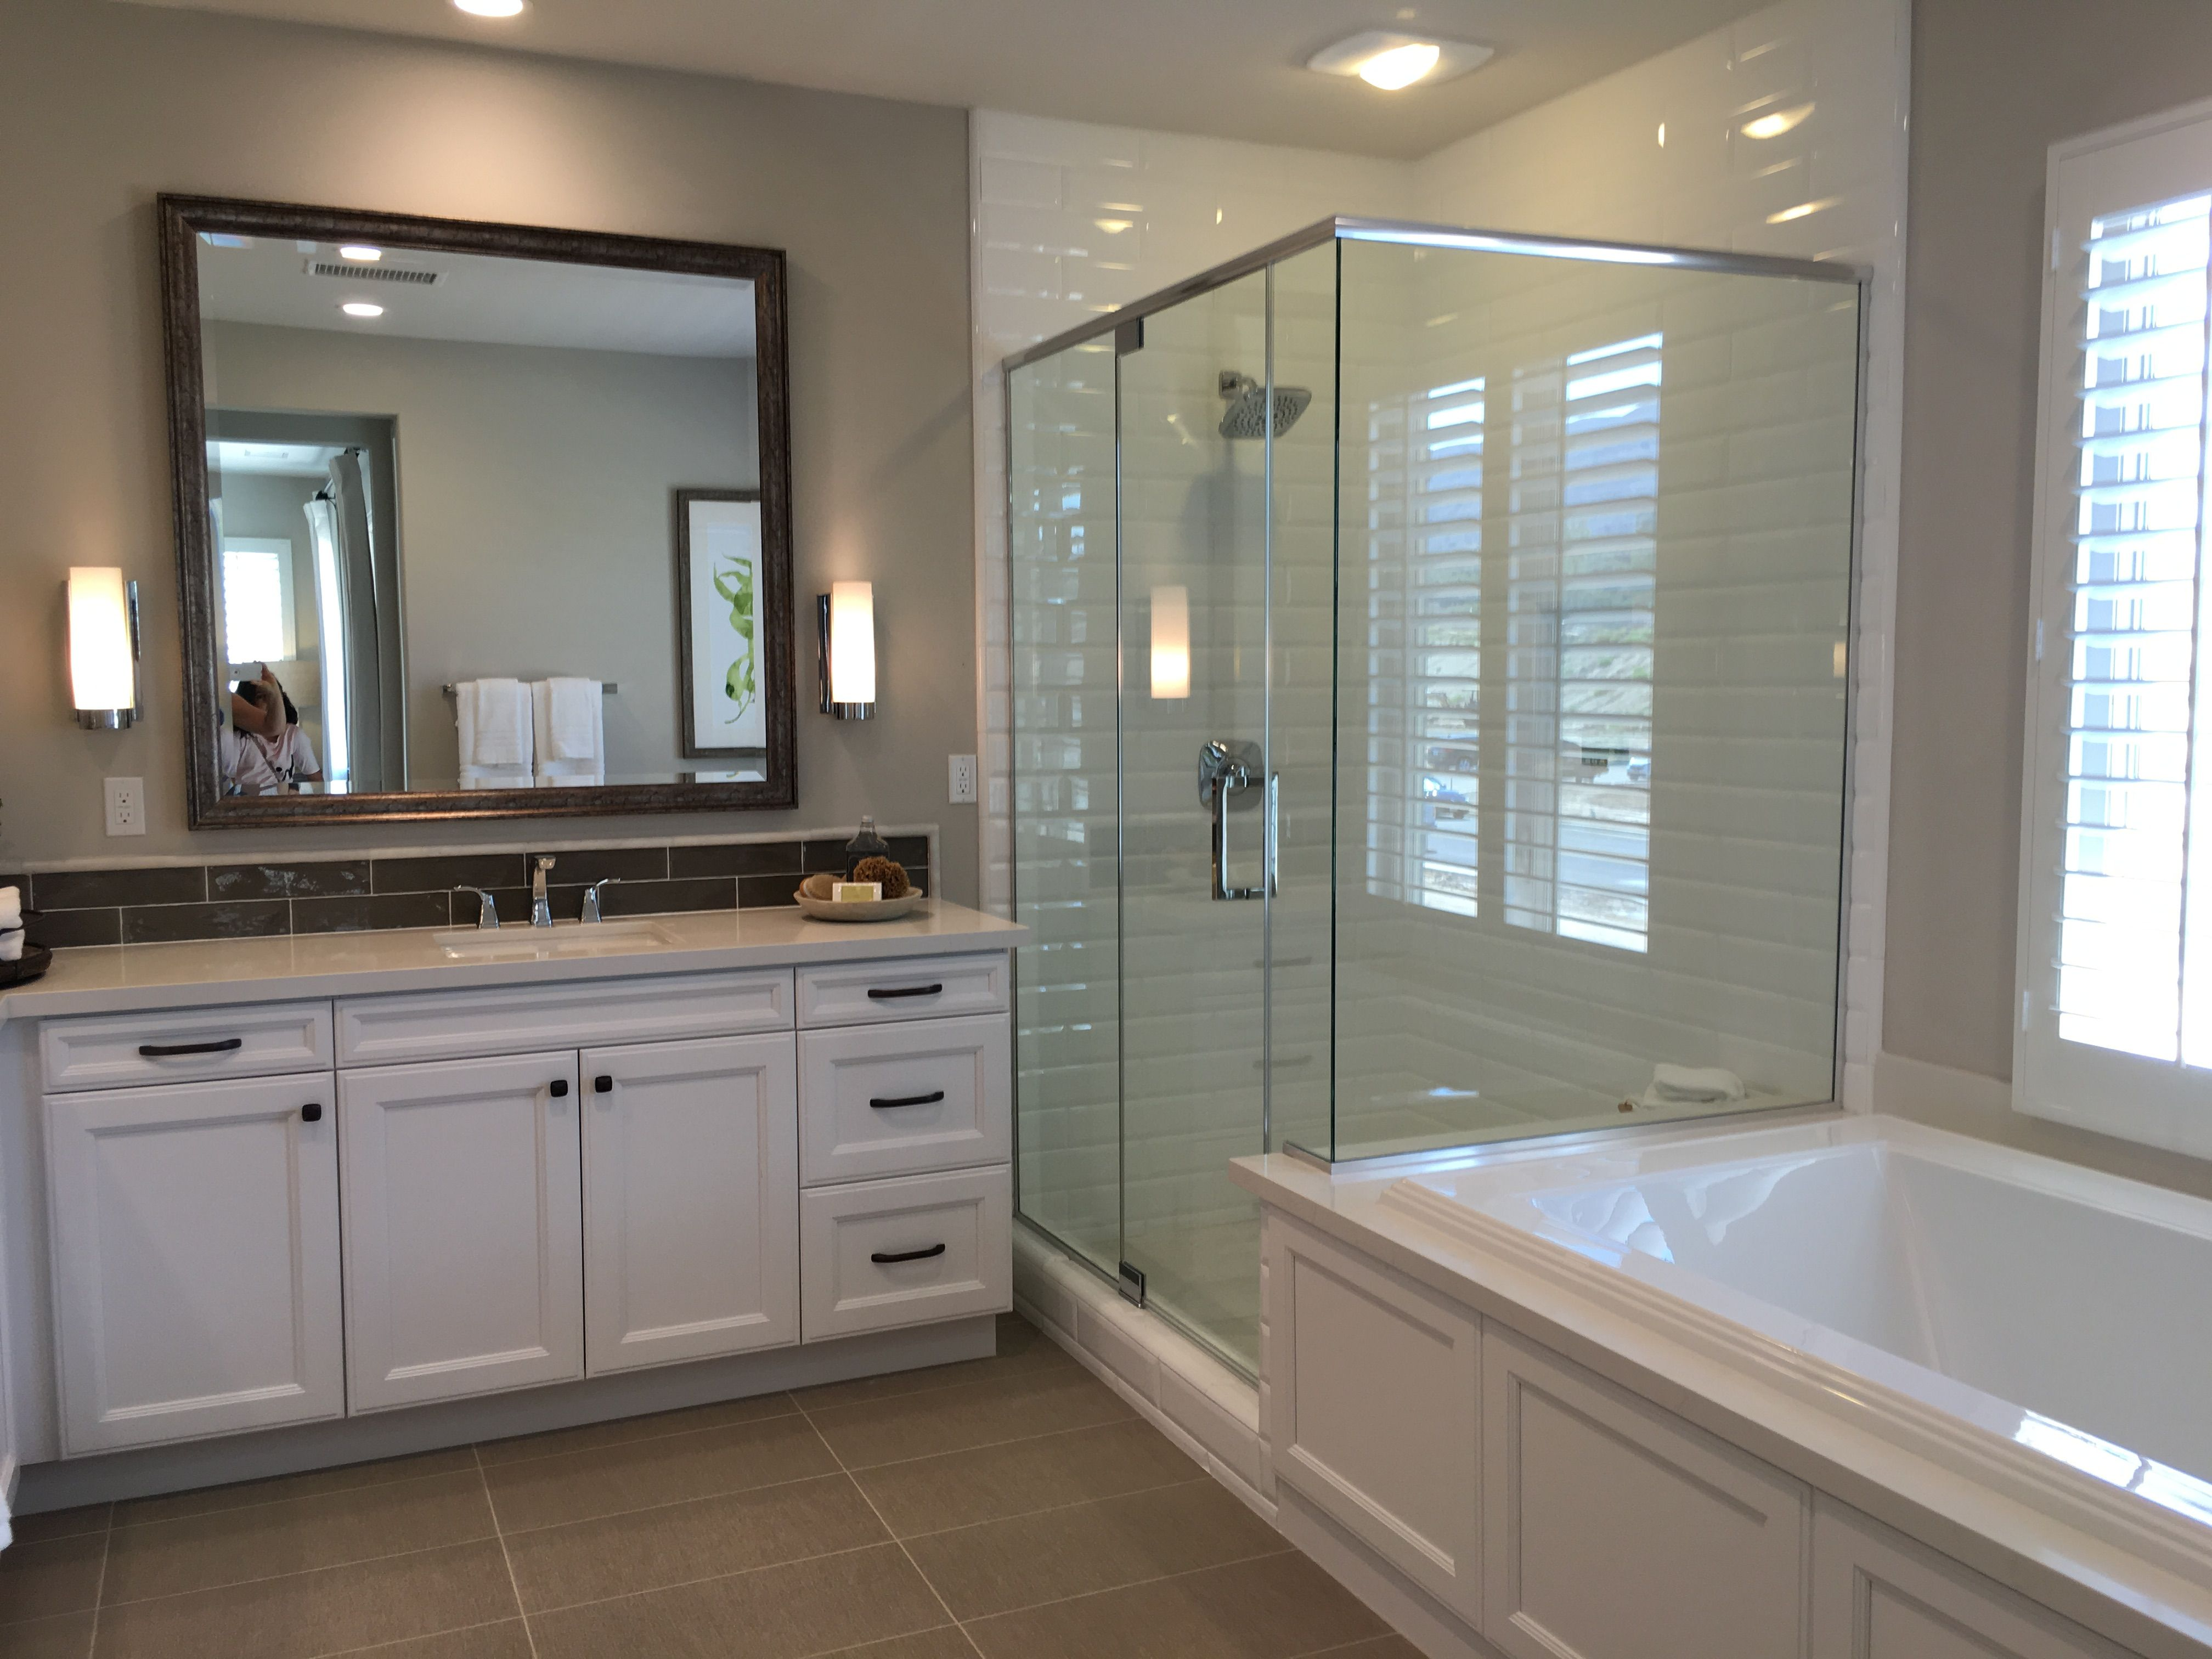 Pin By Christina Khandan On Beautiful Baths 1 Quality Decor Room Design Home